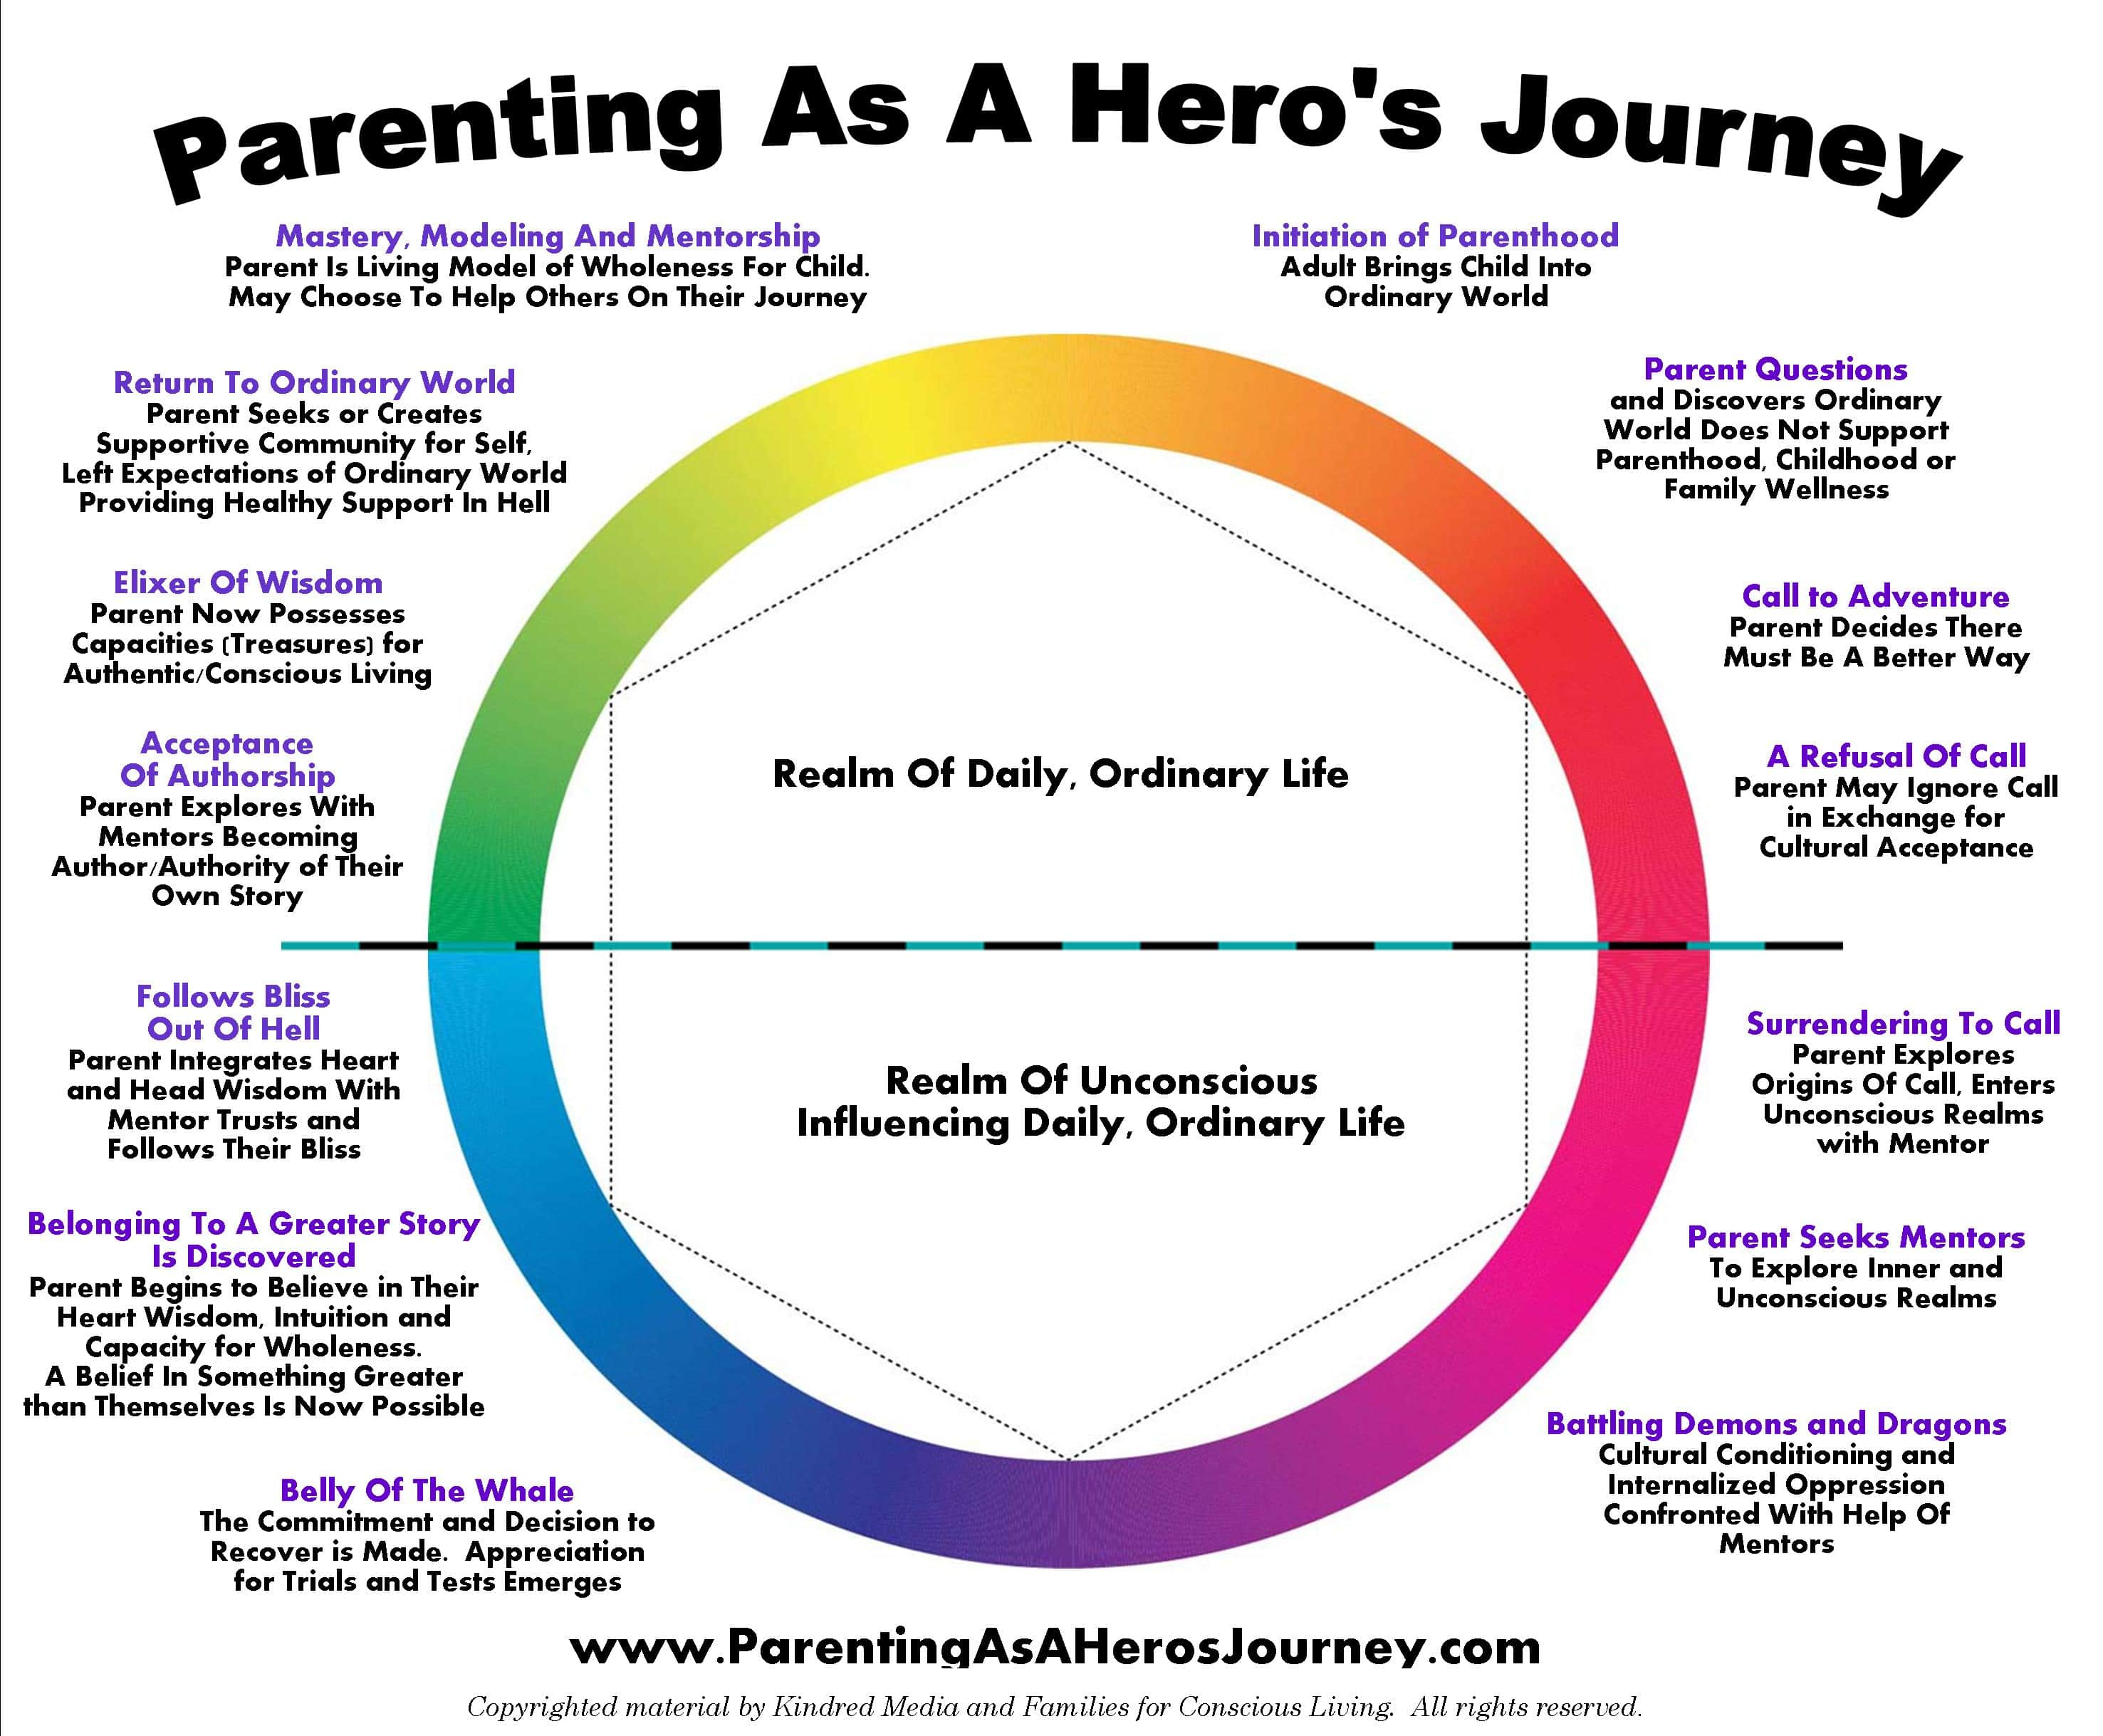 parenting-as-a-heros-journey-circle-graphic2